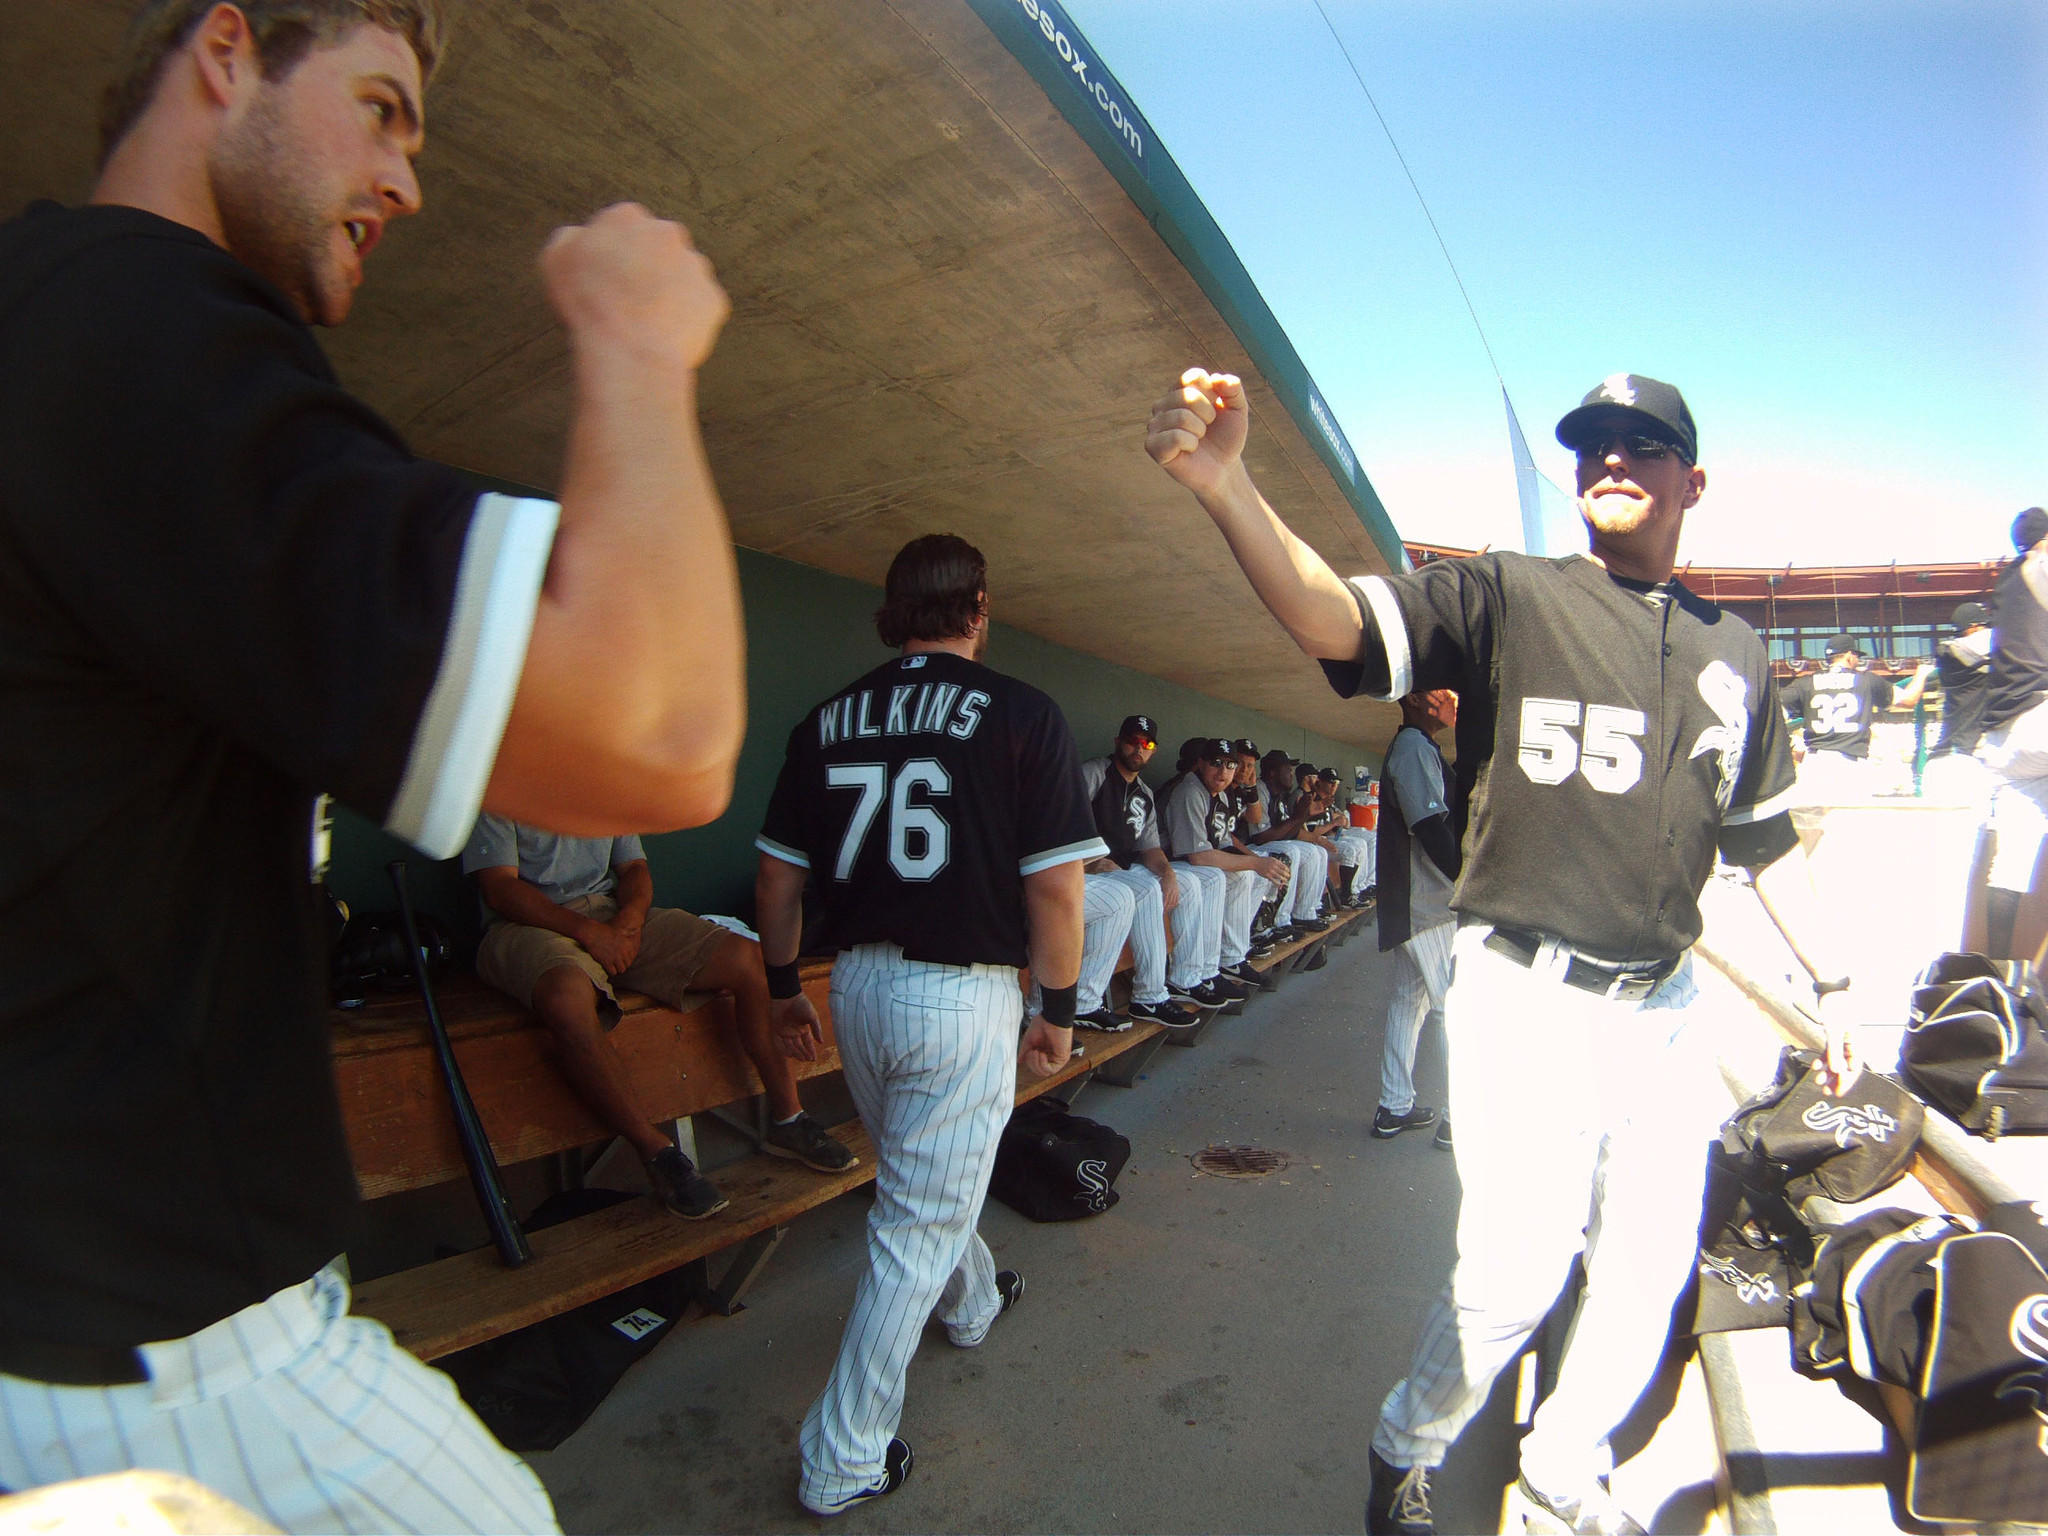 White Sox players Matt Davidson, left, and Felipe Paulino, right fist bum in the dugout Monday, March 3, 2014 during a White Sox win over the Kansas City Royals at spring training in Glendale, Arizona.